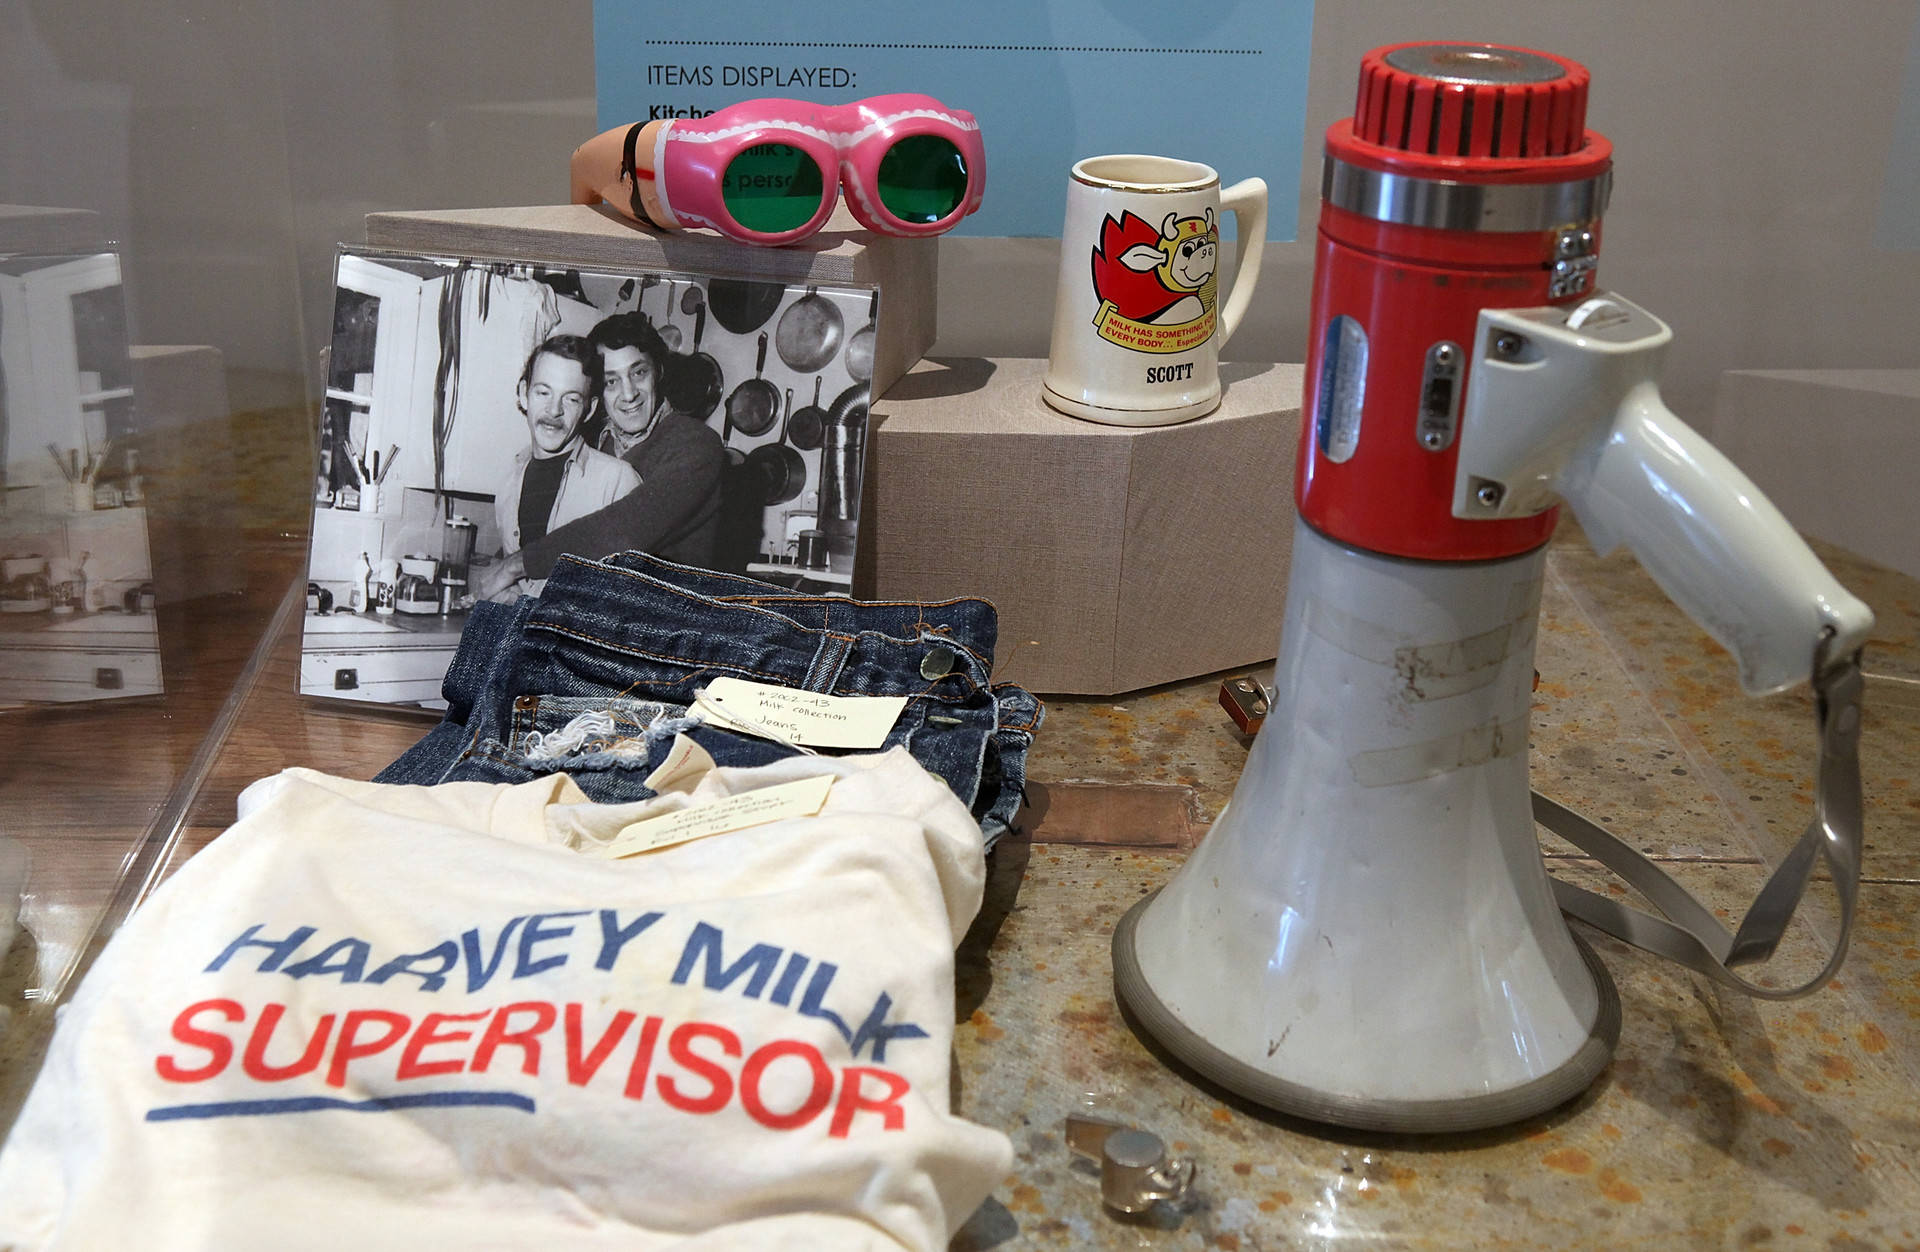 Personal possessions of the late San Francisco supervisor Harvey Milk are displayed during the grand opening of the Gay, Lesbian, Bisexual and Transgender History Museum on January 12, 2011 in San Francisco, California. Justin Sullivan/Getty Images